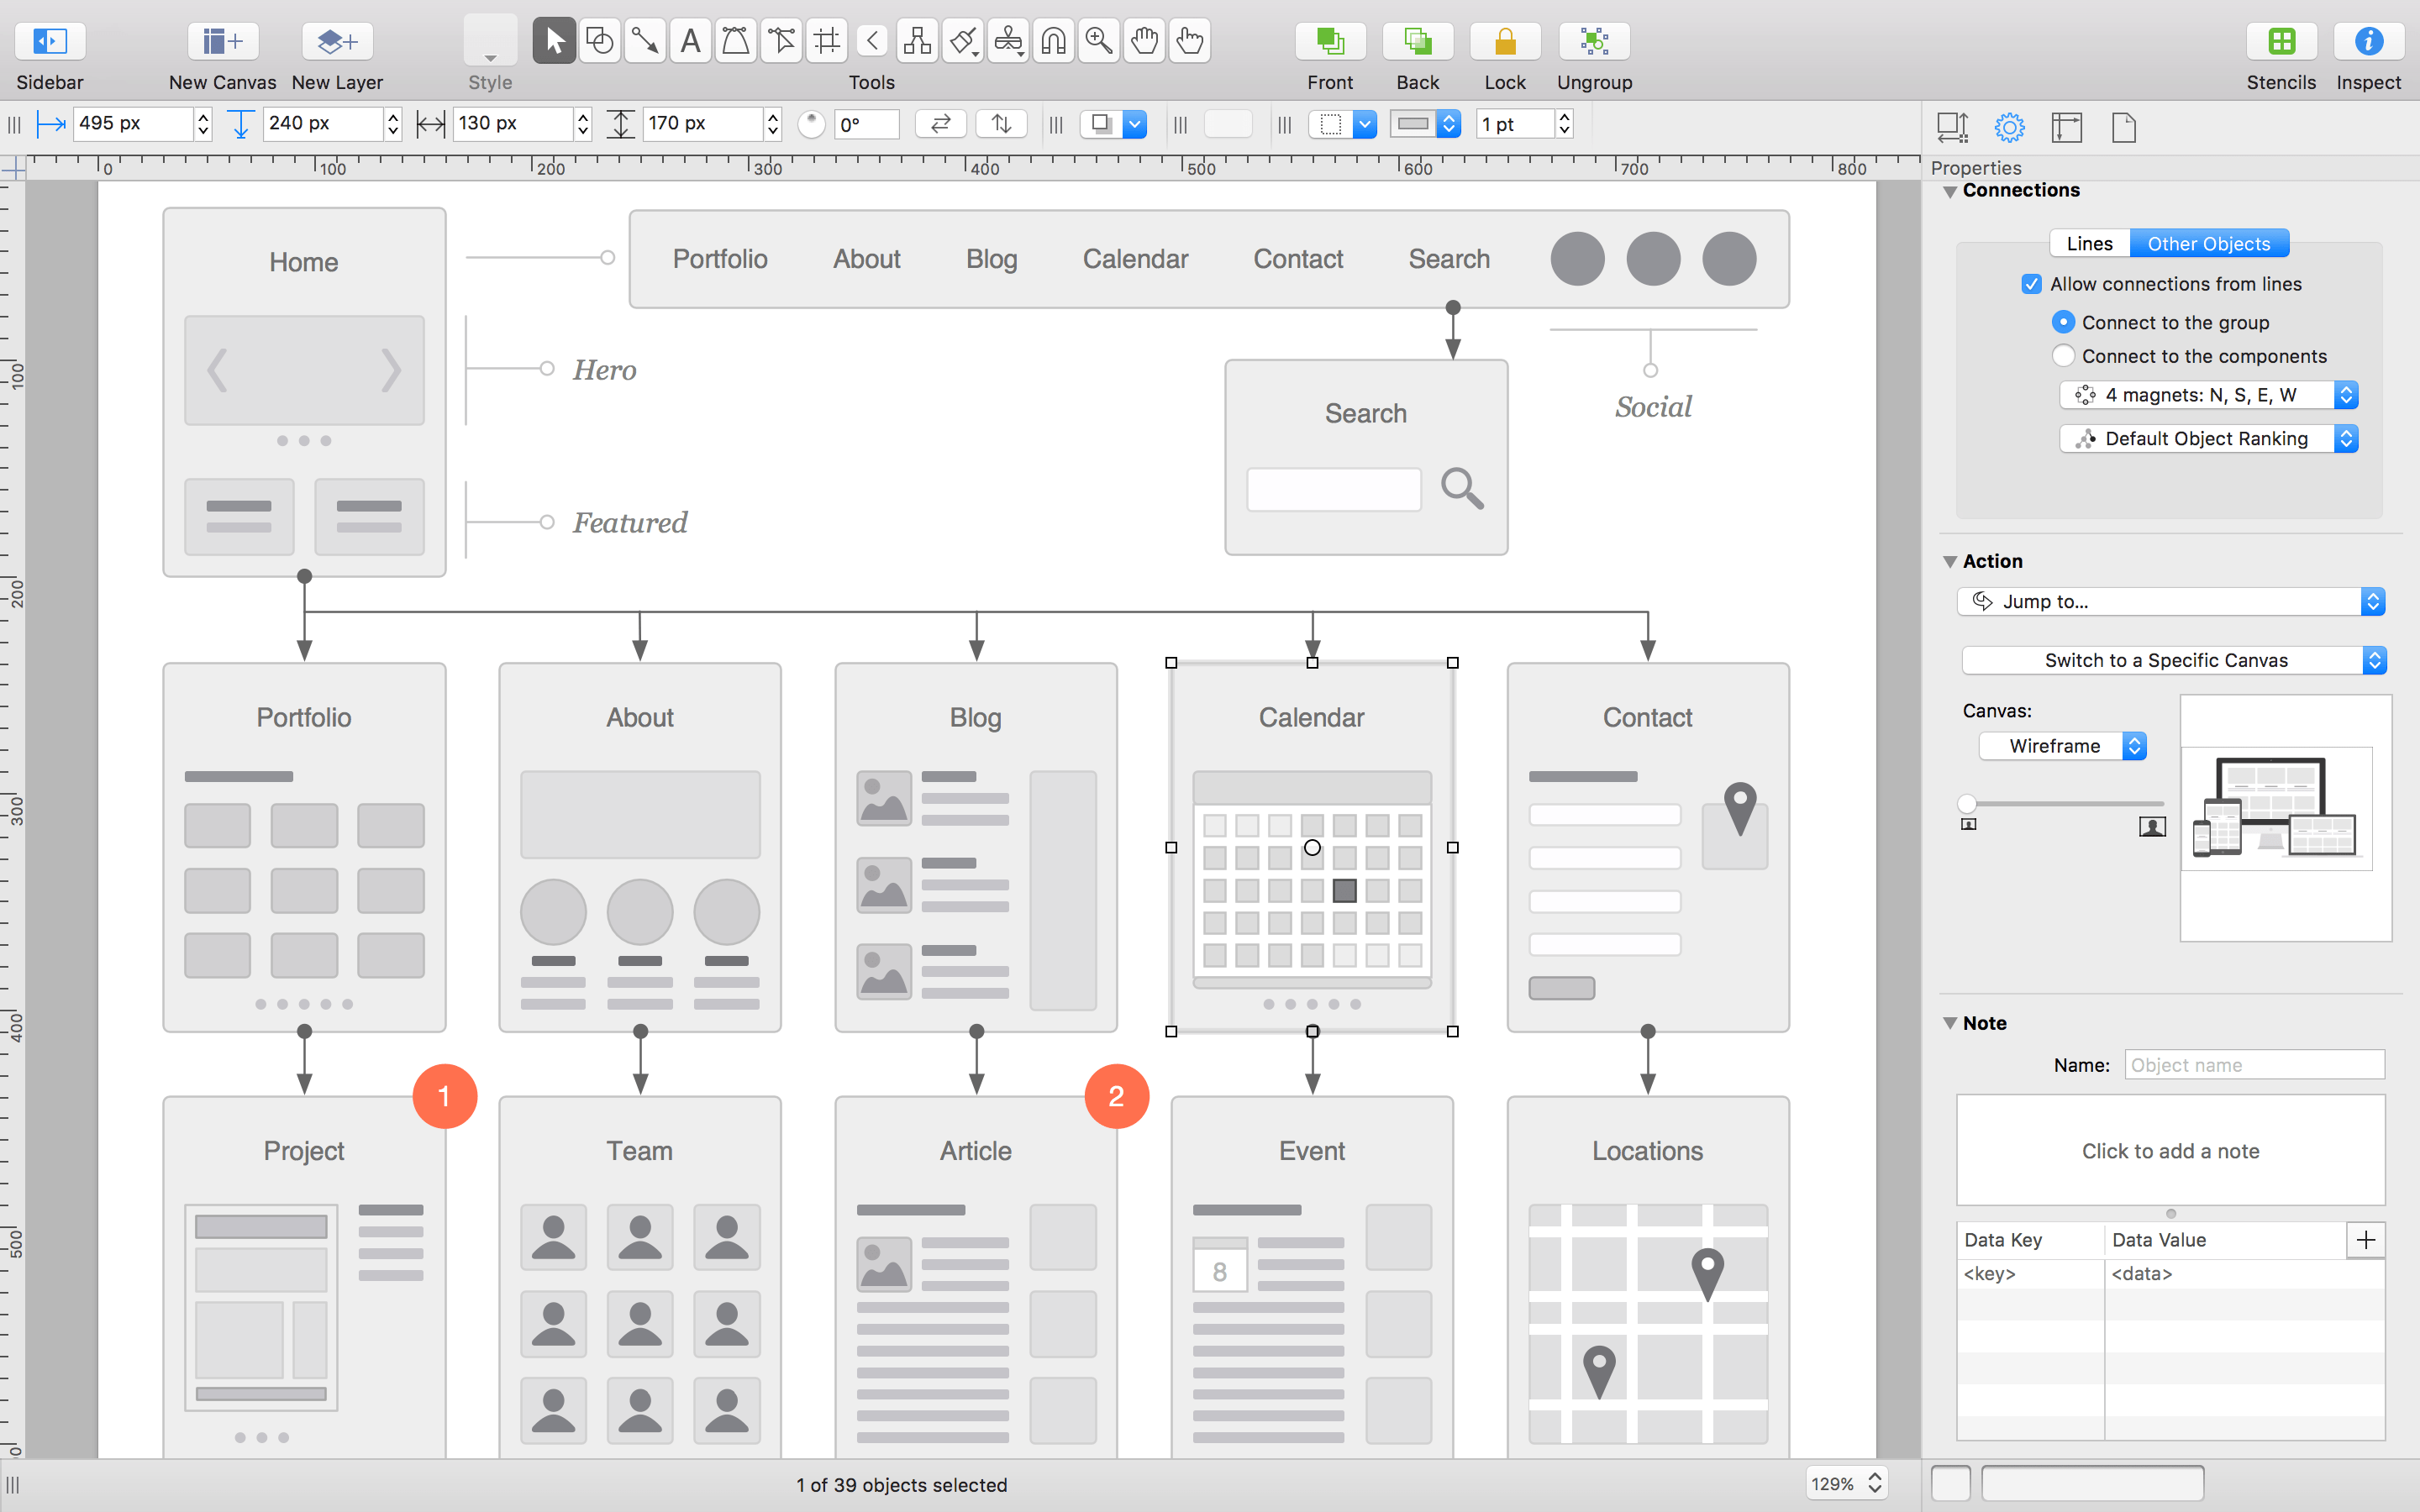 Diagramming the flow of a website with OmniGraffle.